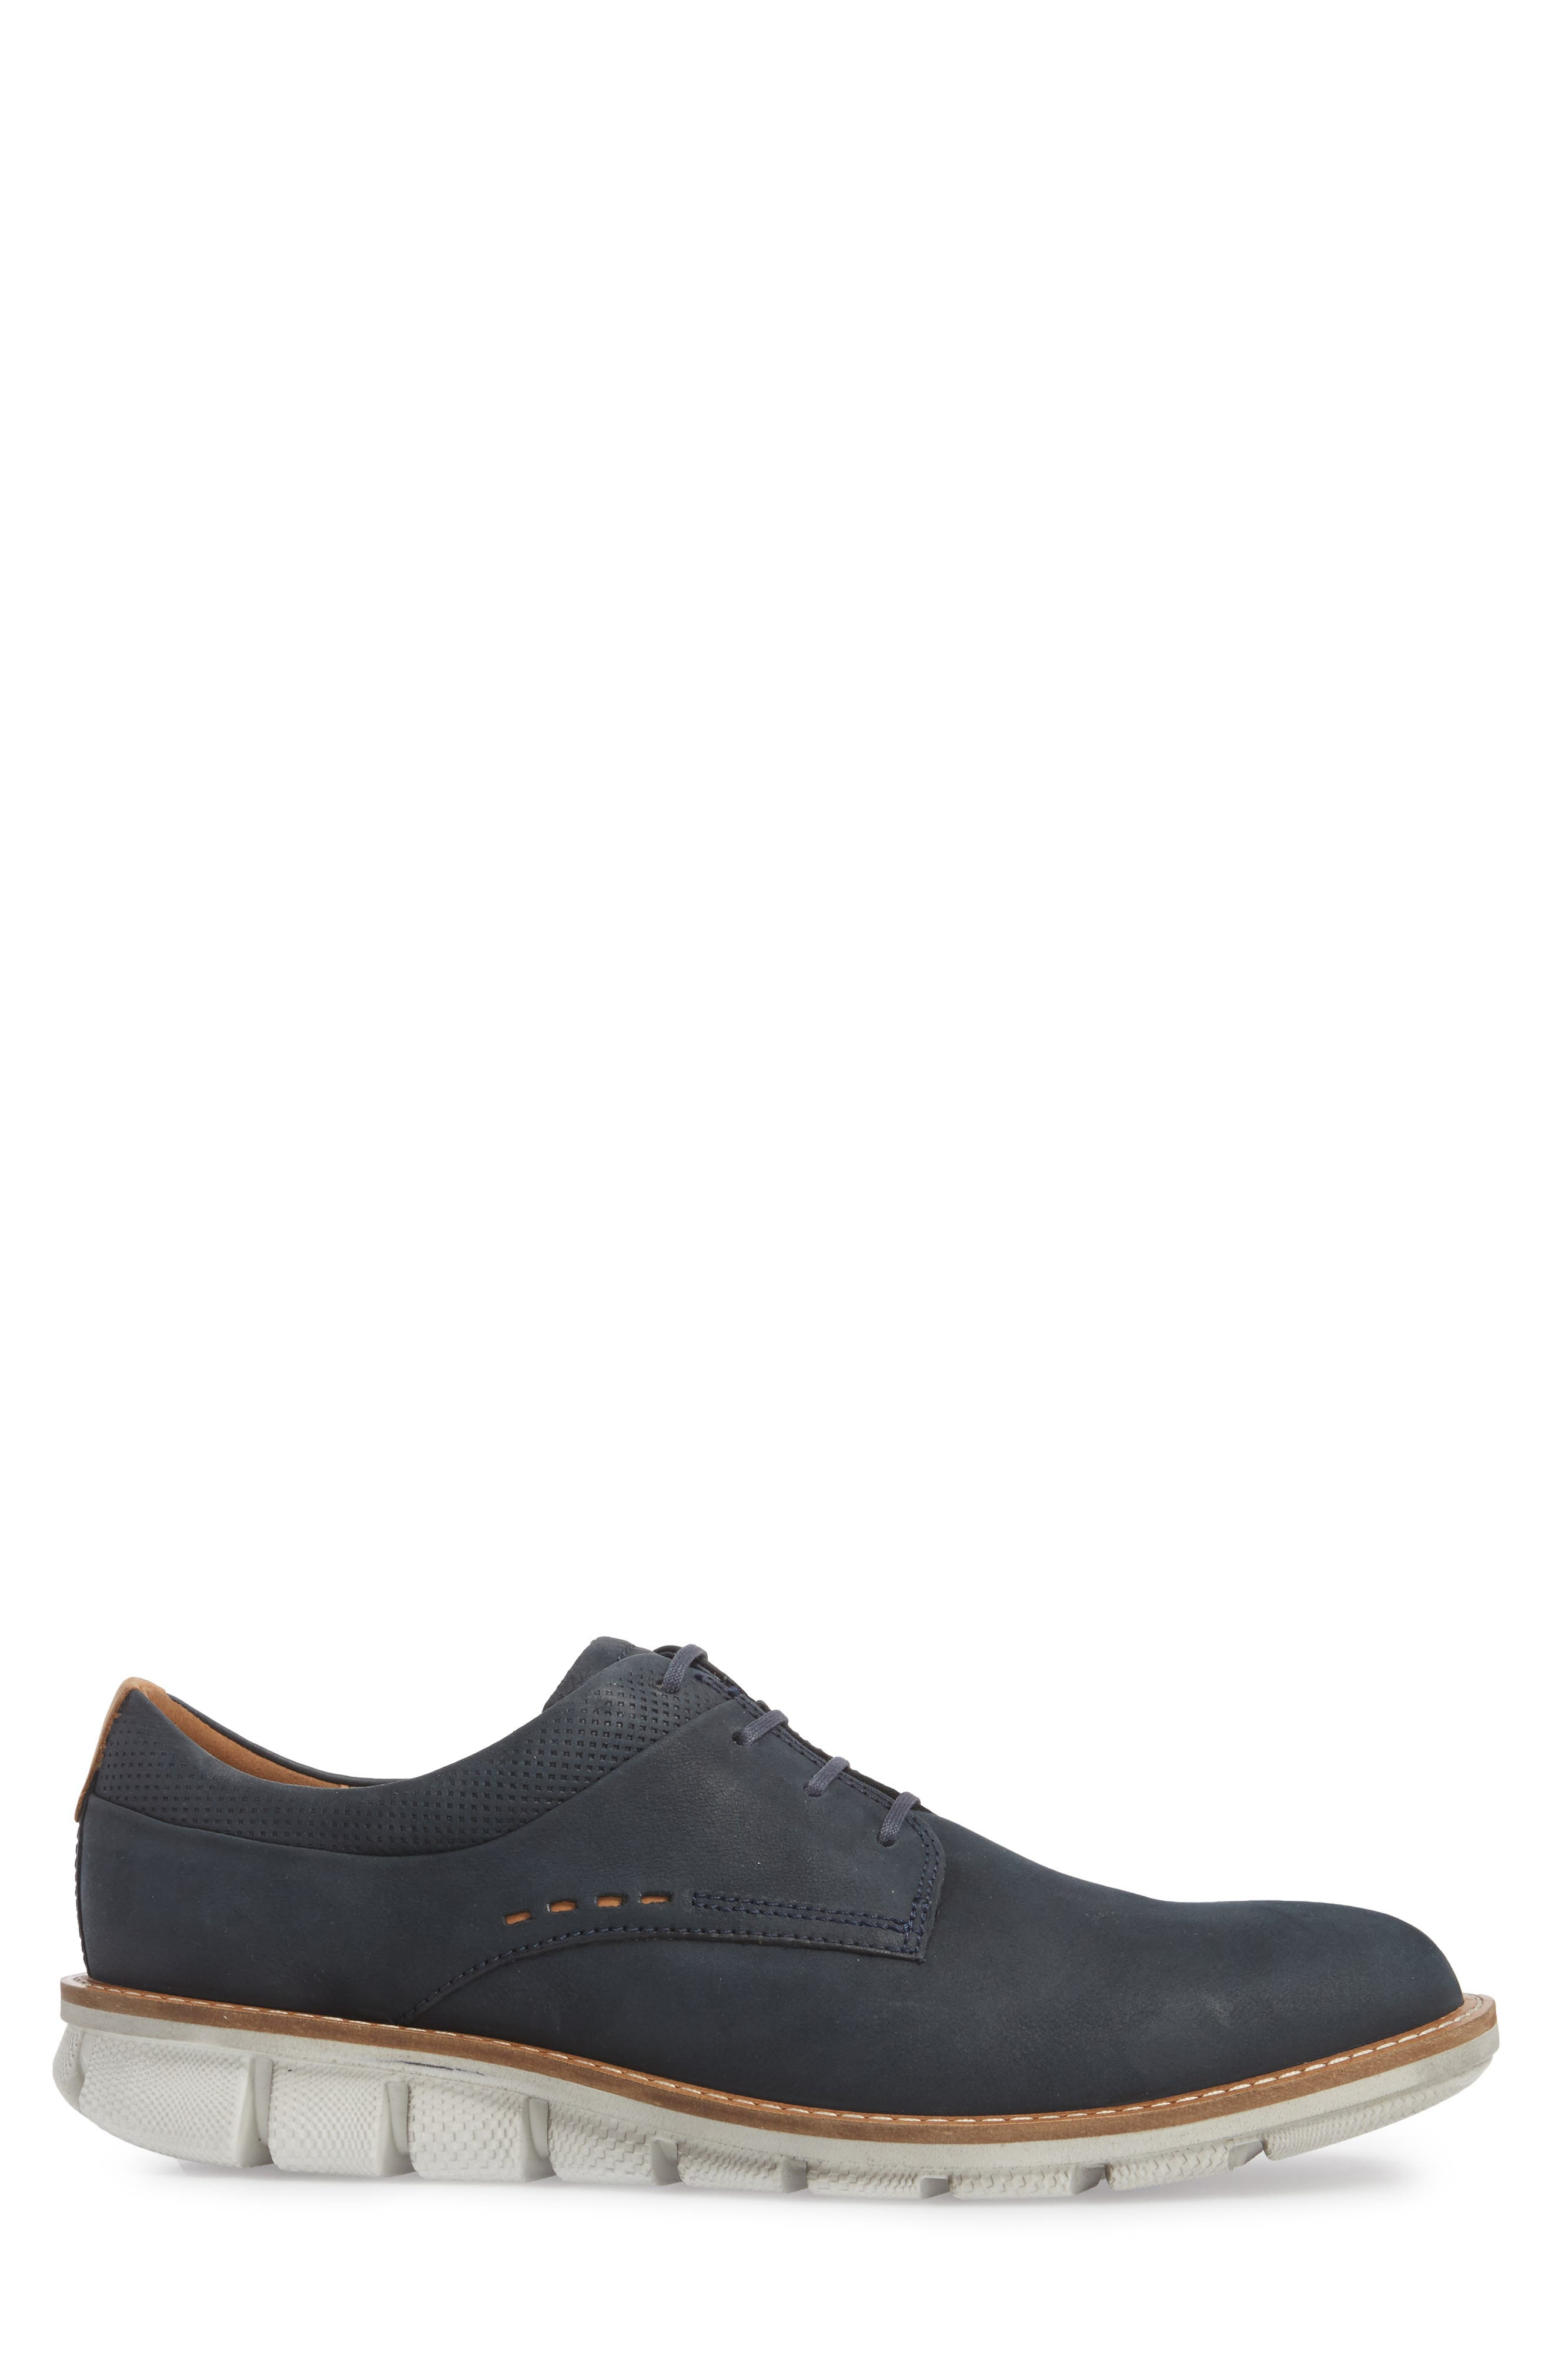 Jeremy Hybrid Plain Toe Derby,                             Alternate thumbnail 3, color,                             NAVY LEATHER